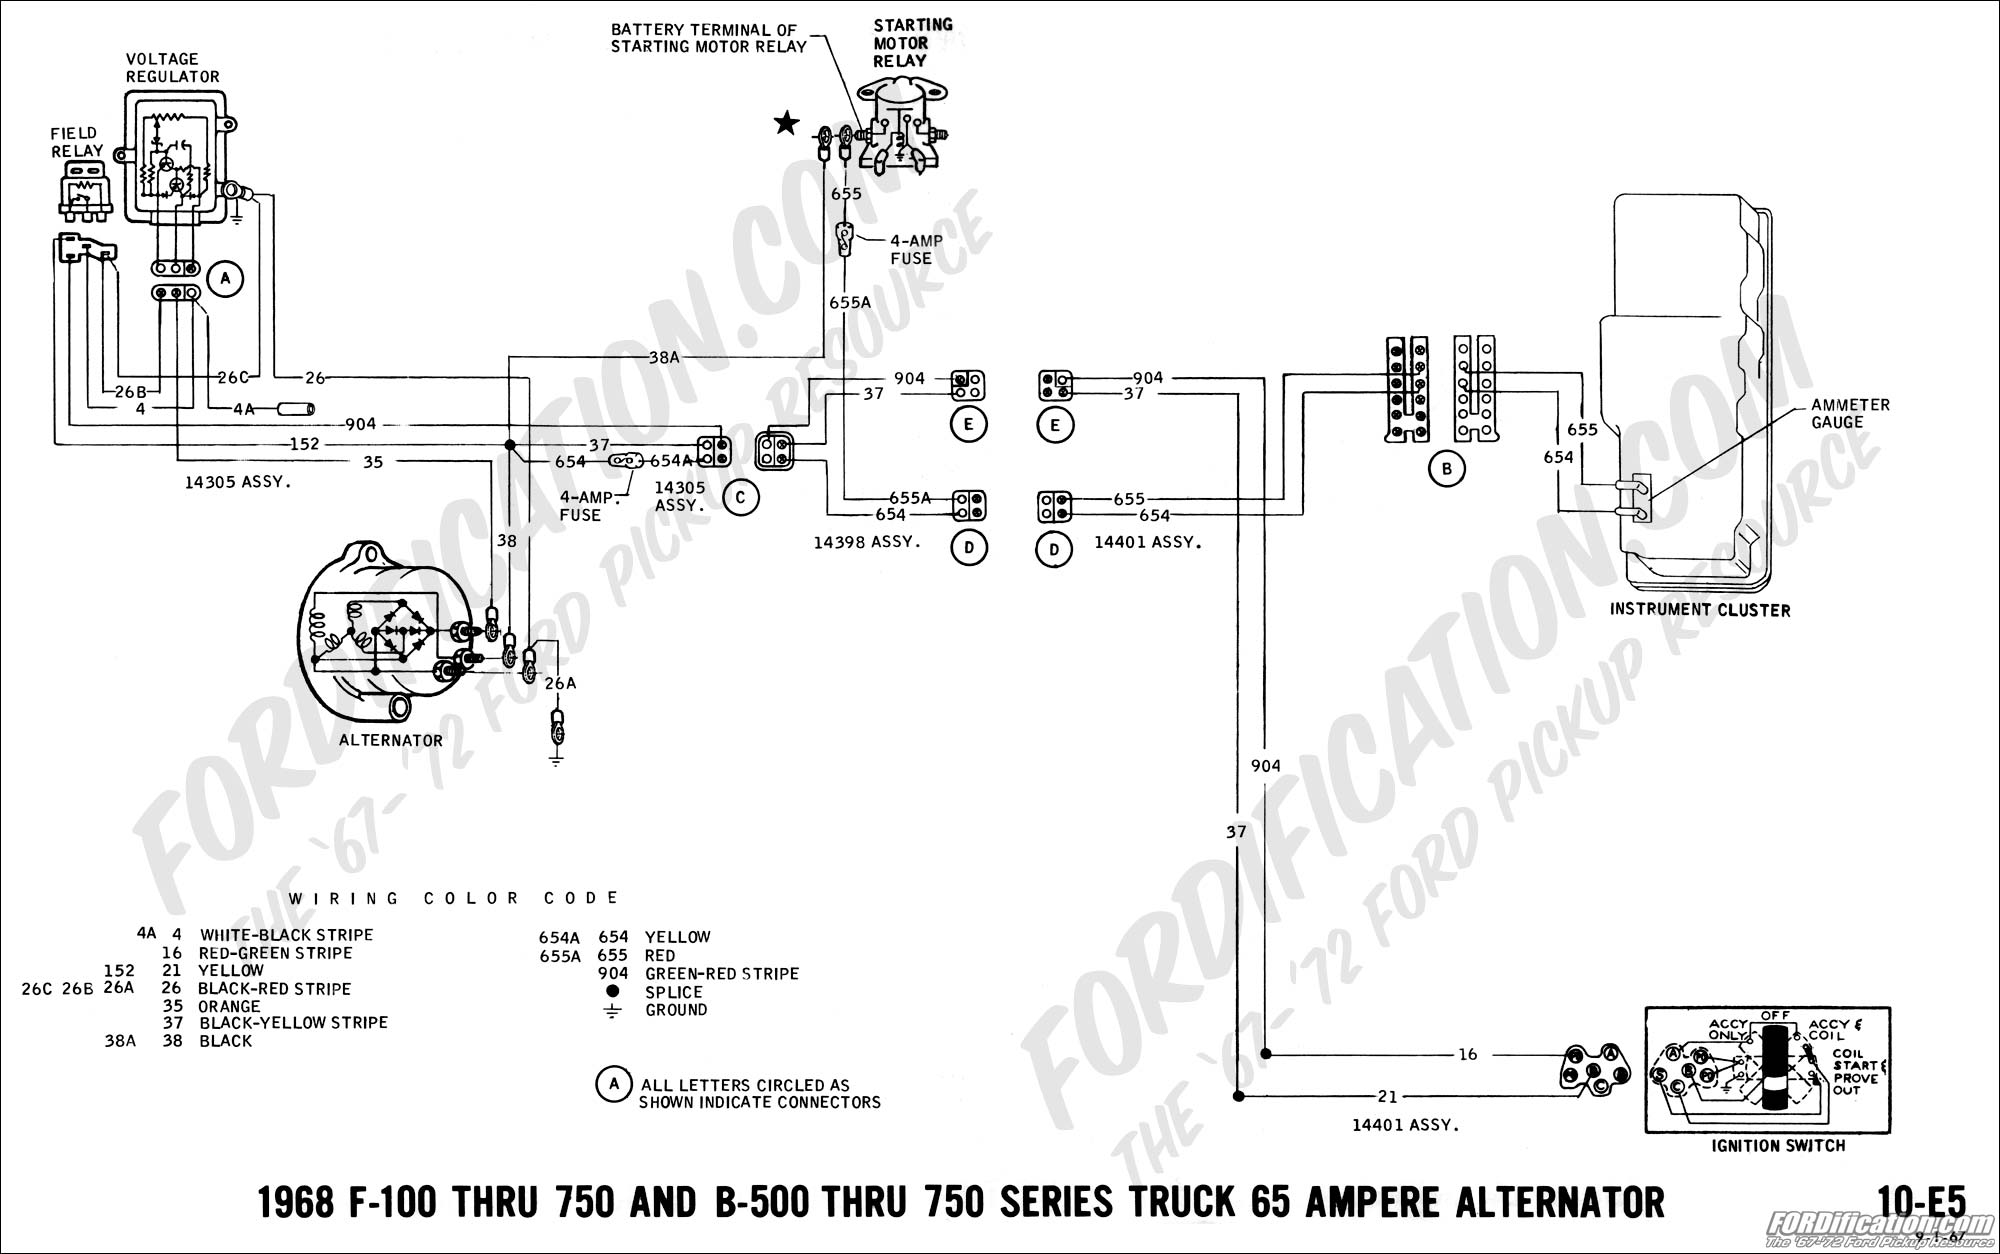 68 07 ford truck technical drawings and schematics section h wiring 1971 ford f250 wiring diagram at gsmportal.co